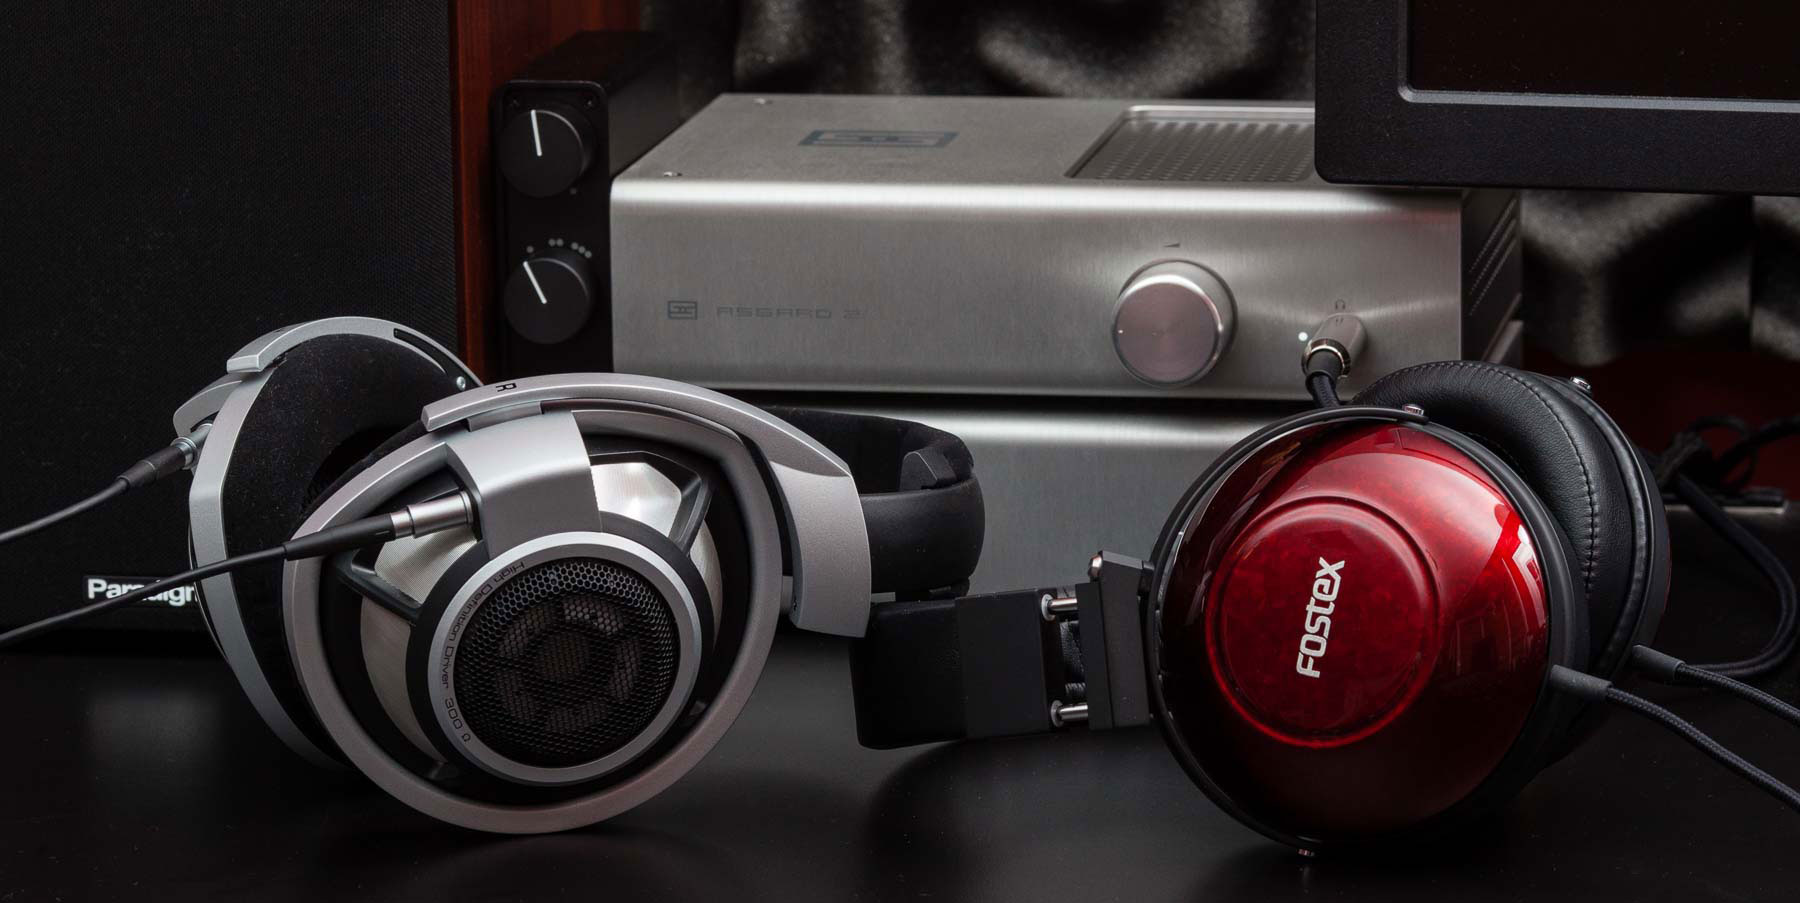 Two Ridiculous Headphones and a Pile of Schiit – Marco org